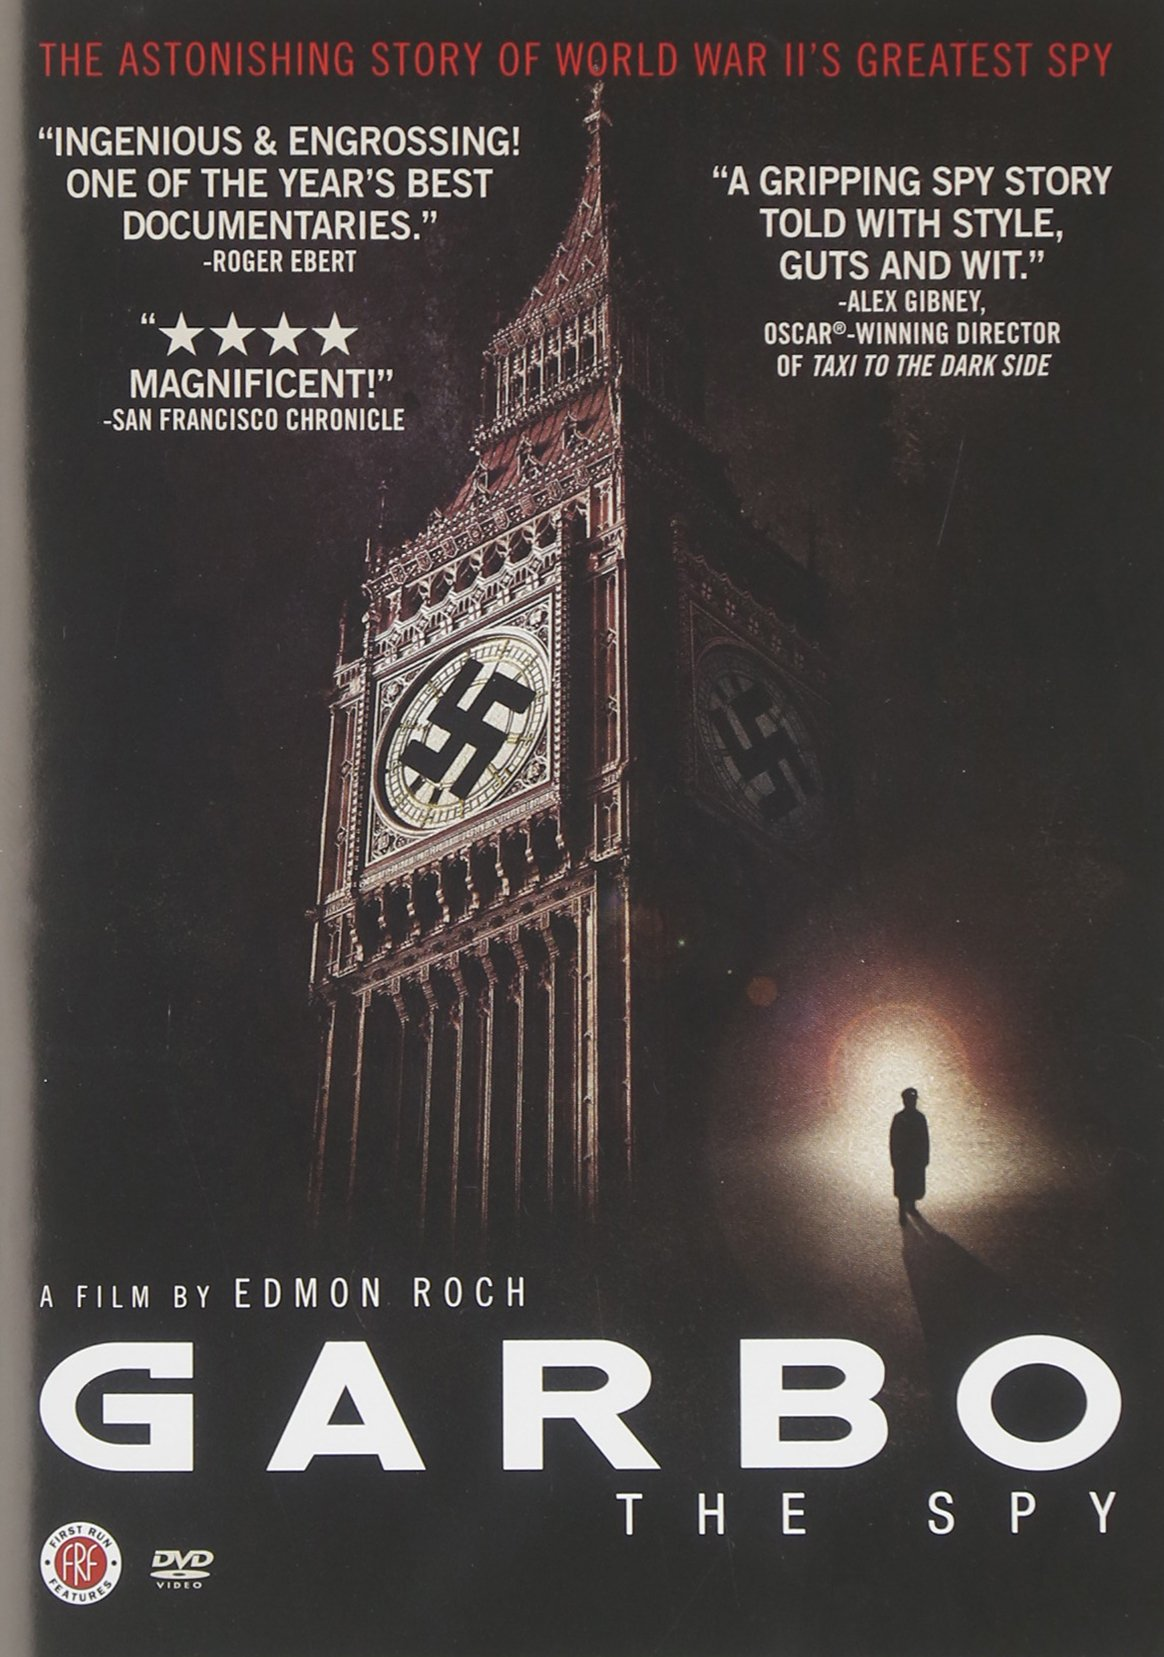 DVD : Aline Griffith - Garbo The Spy (Subtitled)